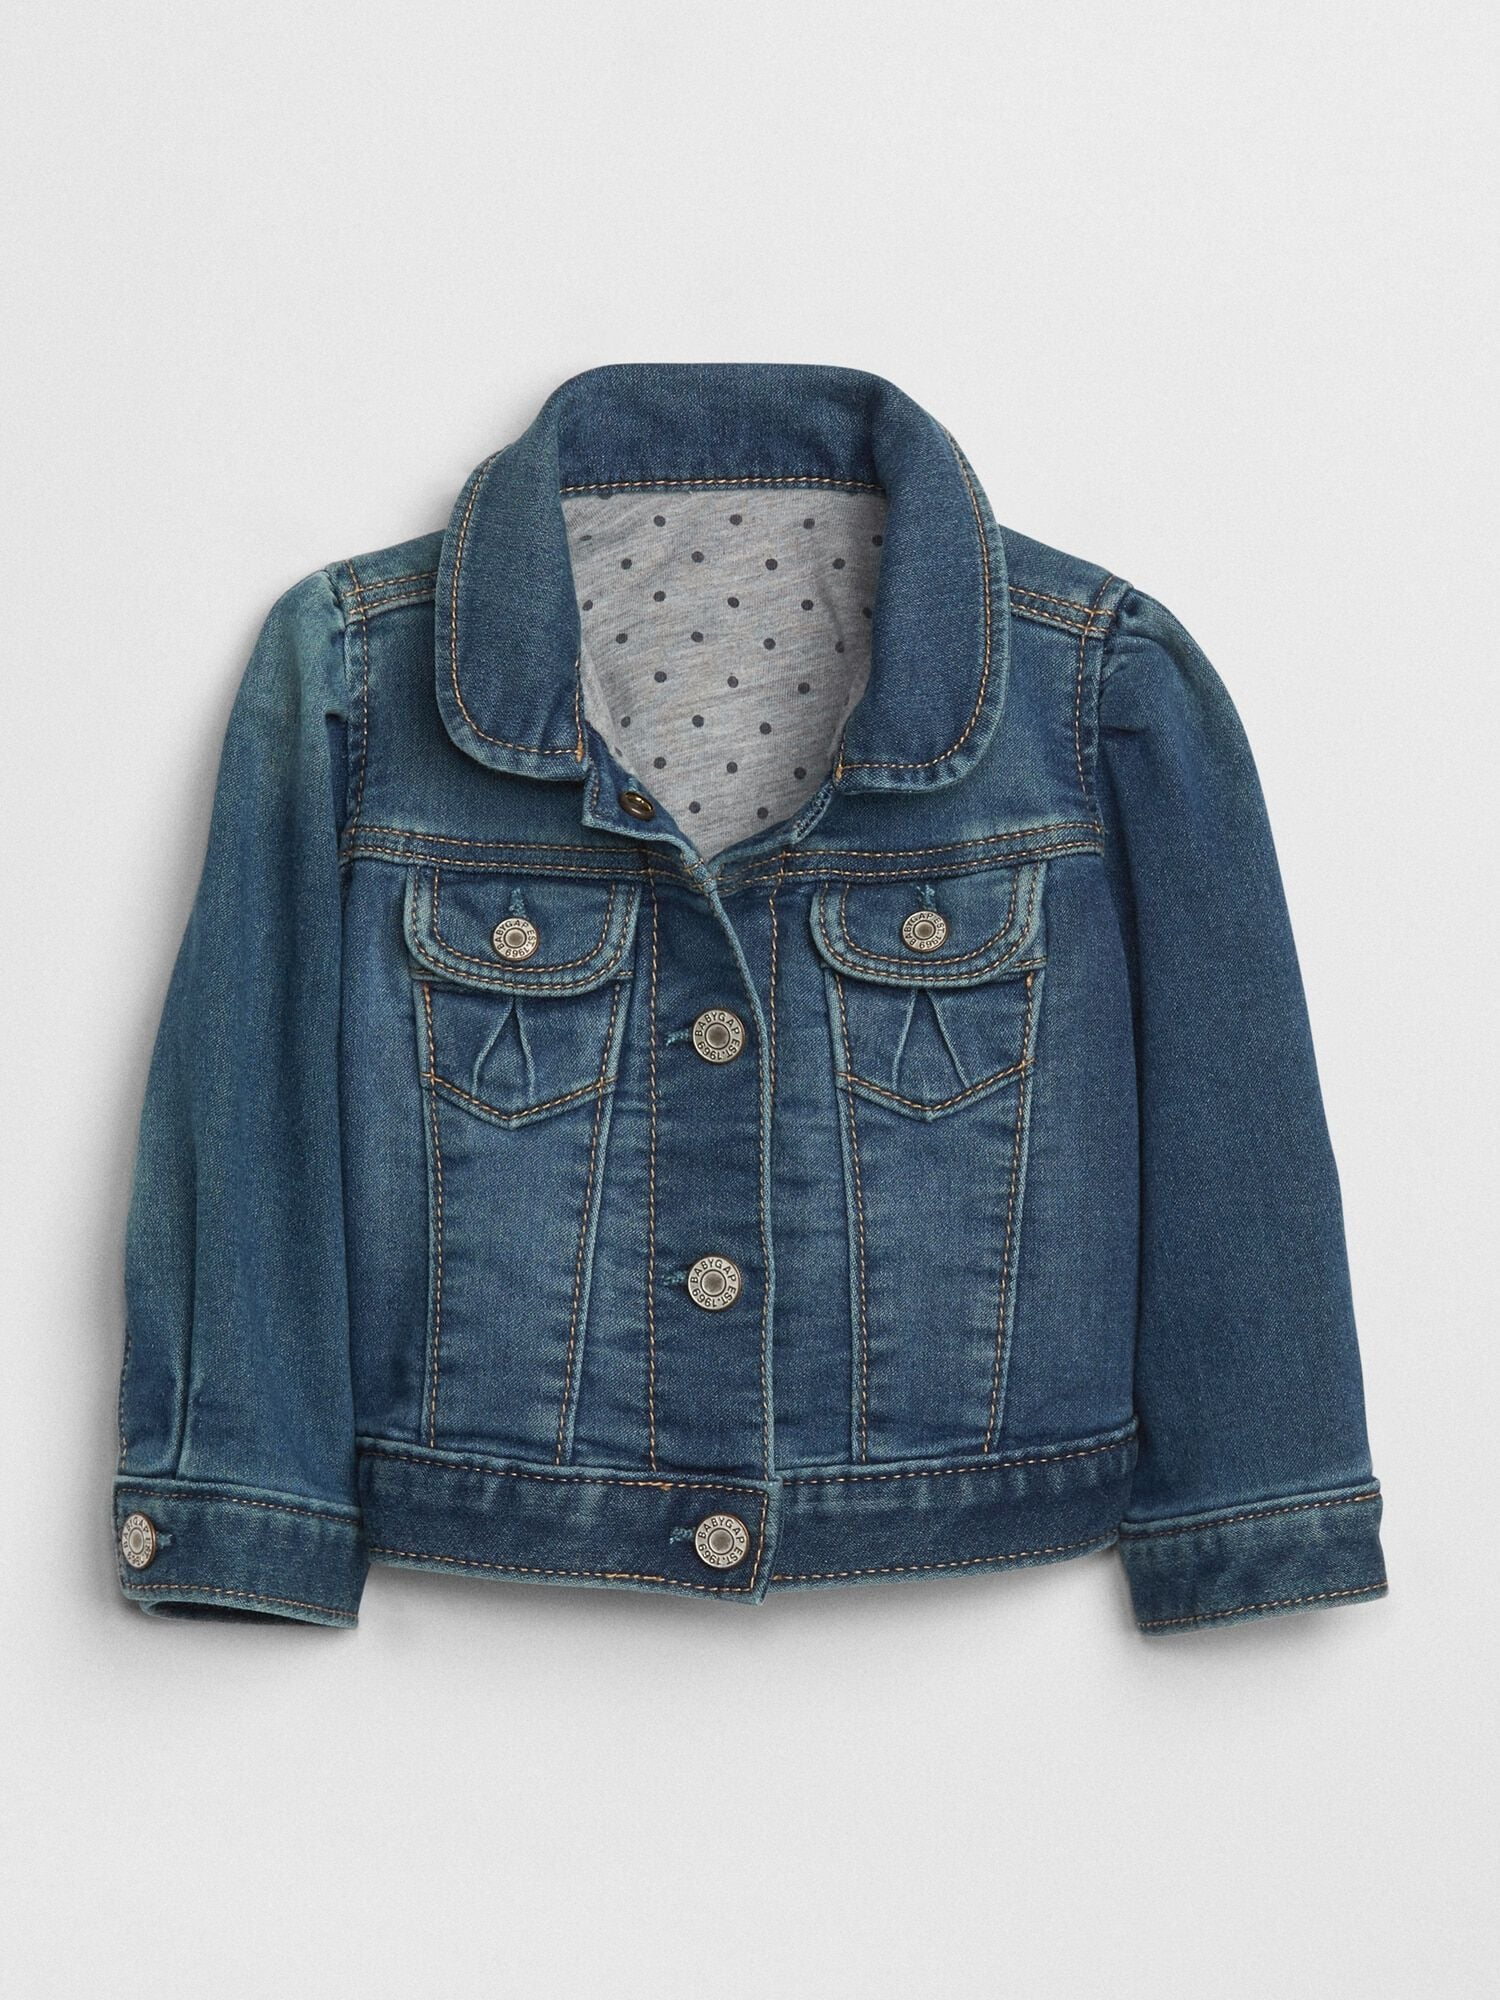 Clever Baby Gap My First Skinny Soft Denim Jeans Size 3-6 Months Clothing, Shoes & Accessories Baby & Toddler Clothing